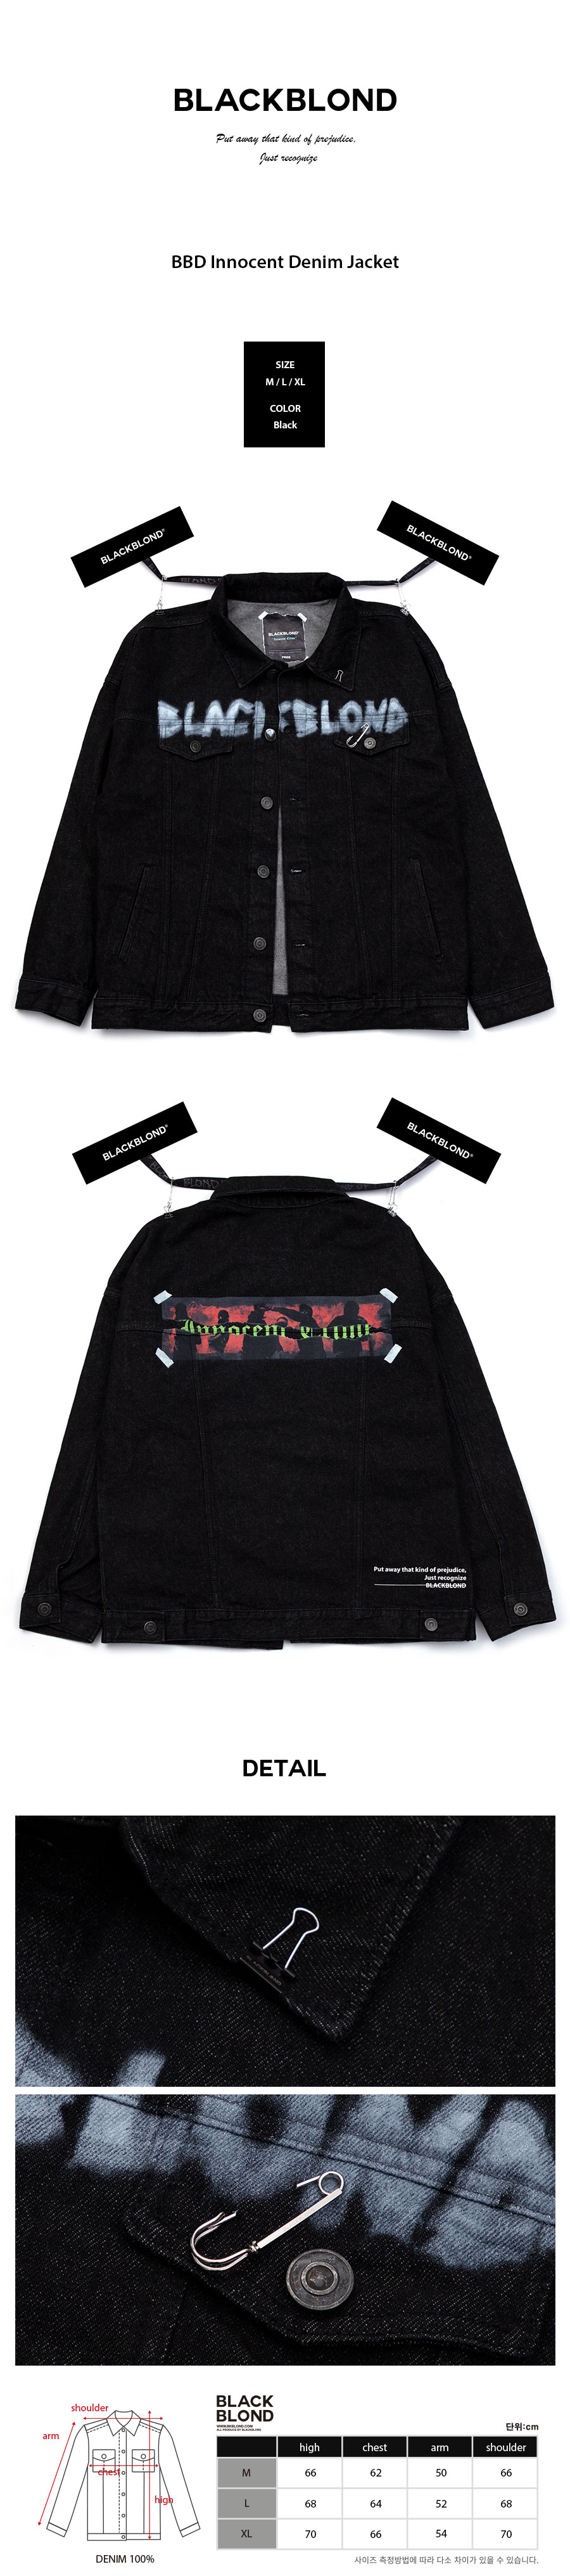 블랙블론드 BLACKBLOND - BBD Innocent Denim Jacket (Black)